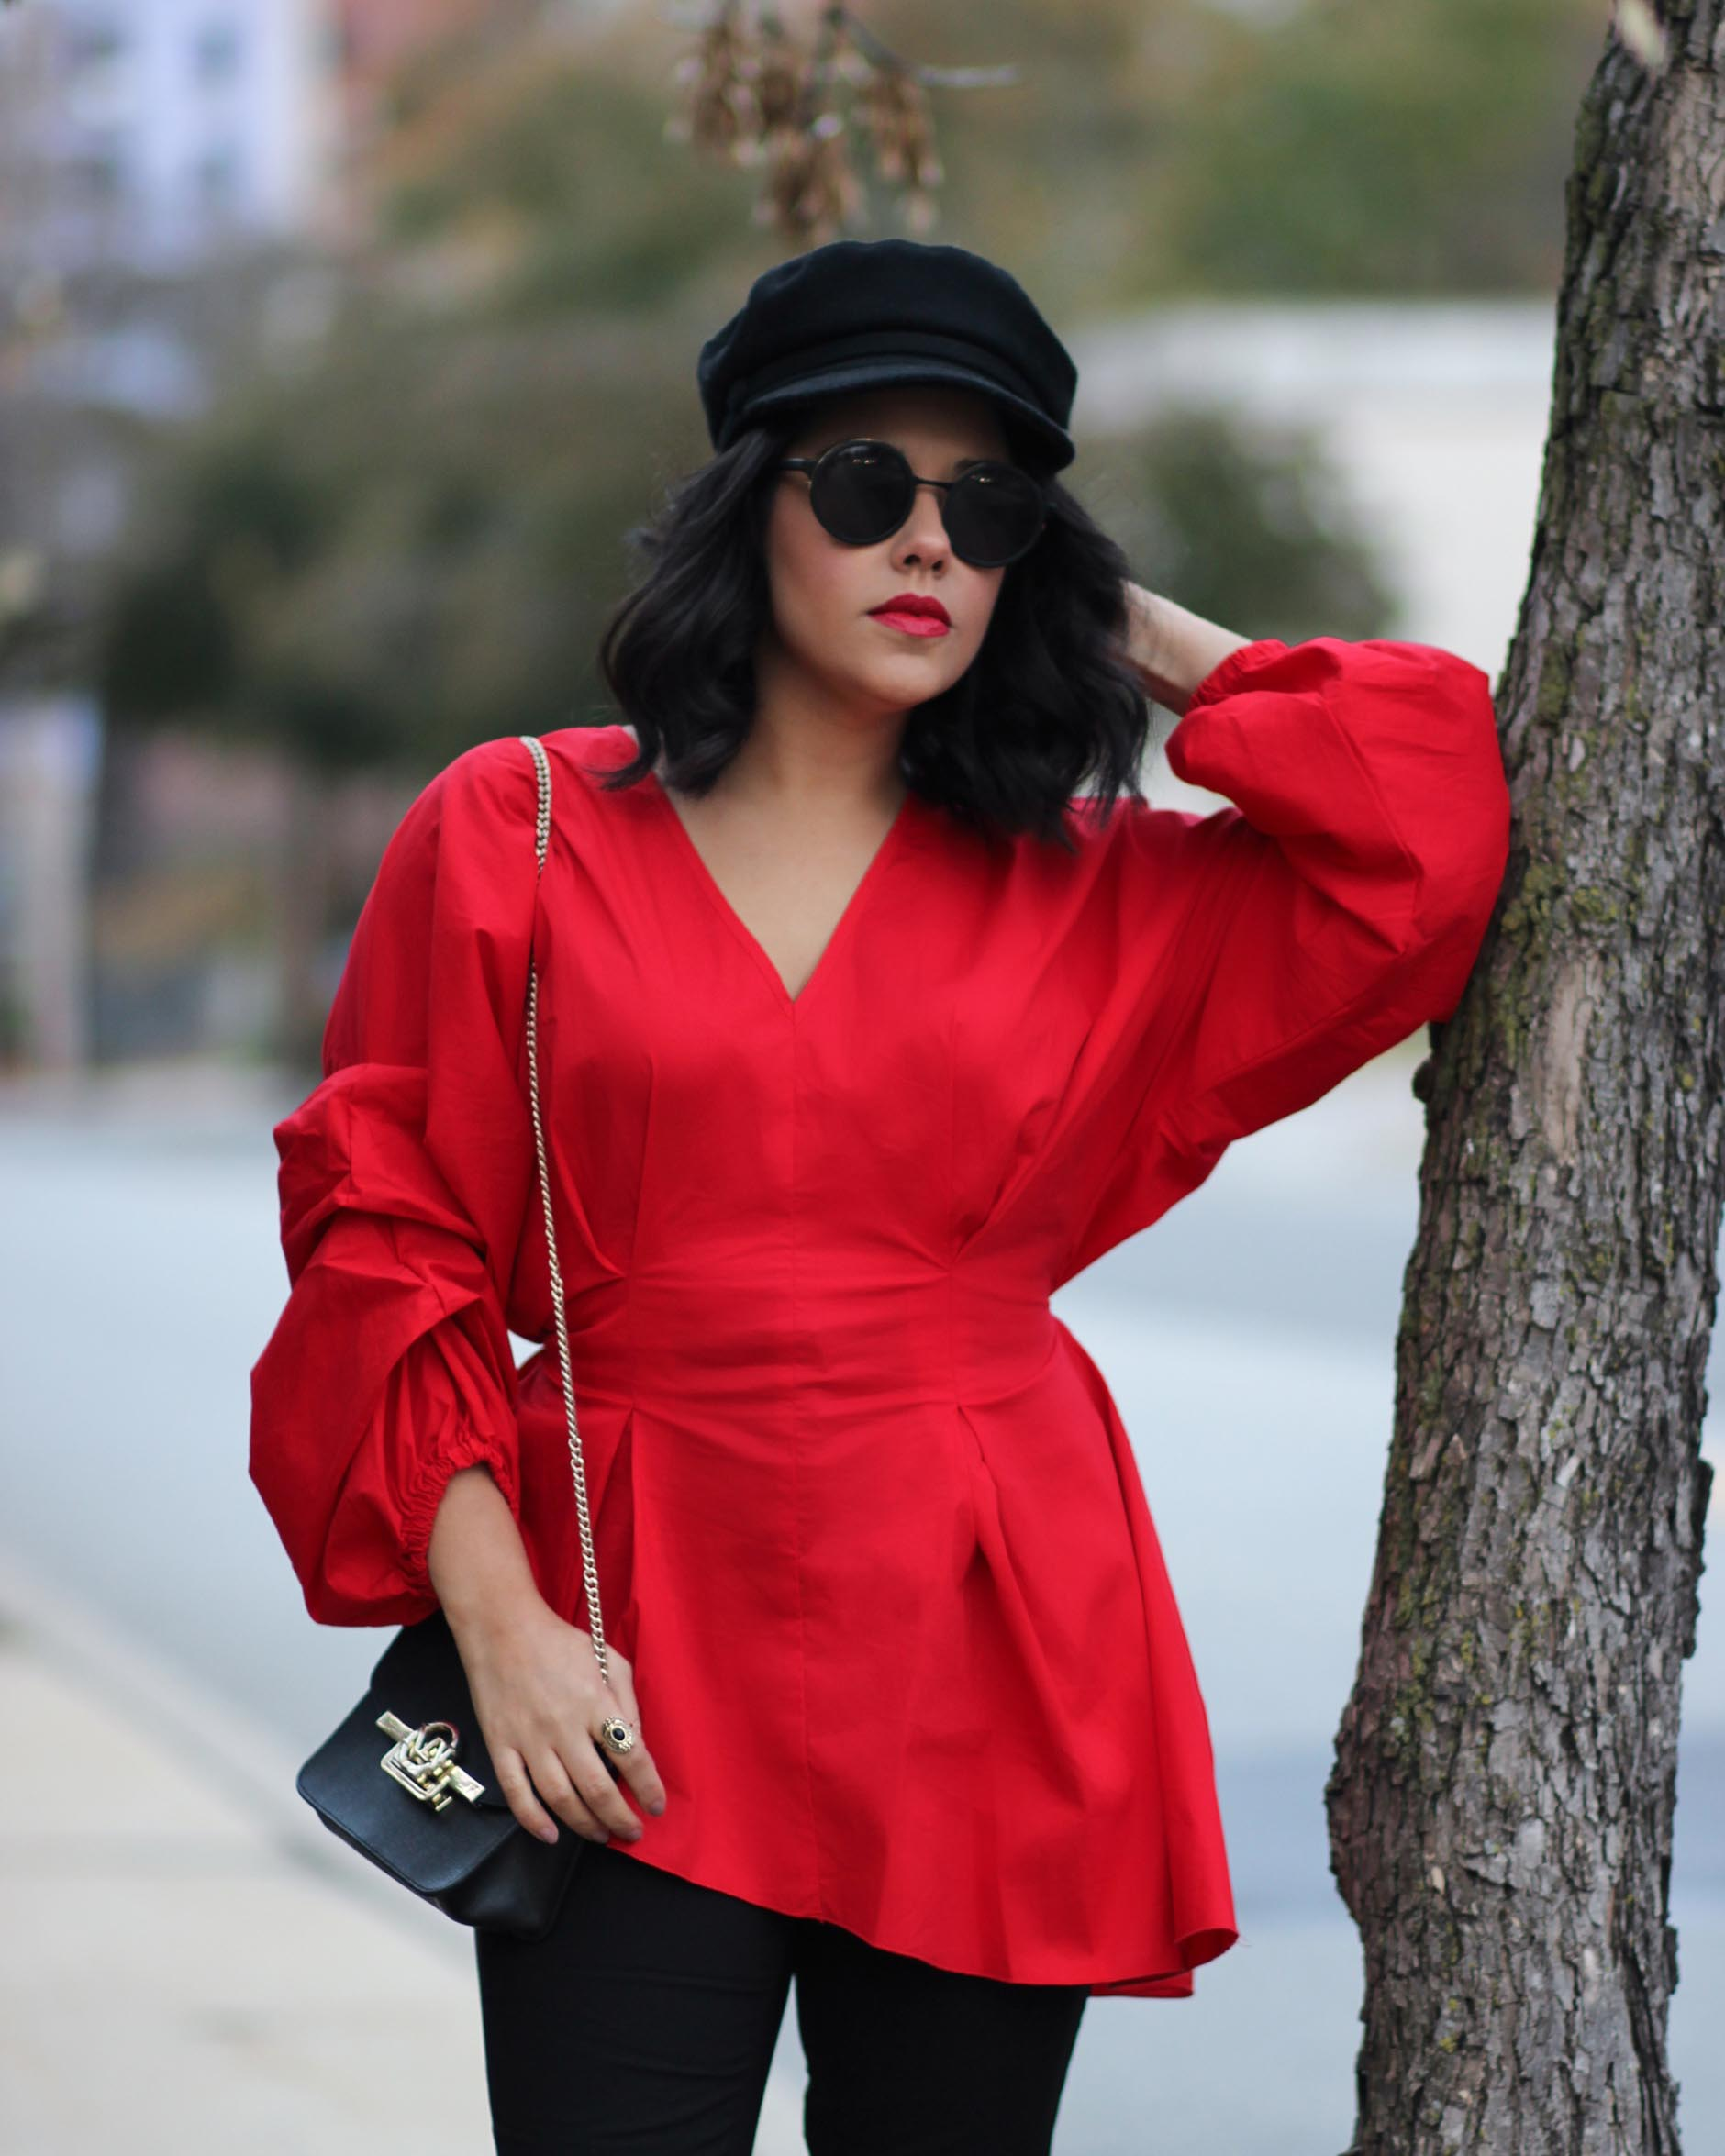 naty michele wearing a red puffy sleeve top from project runway